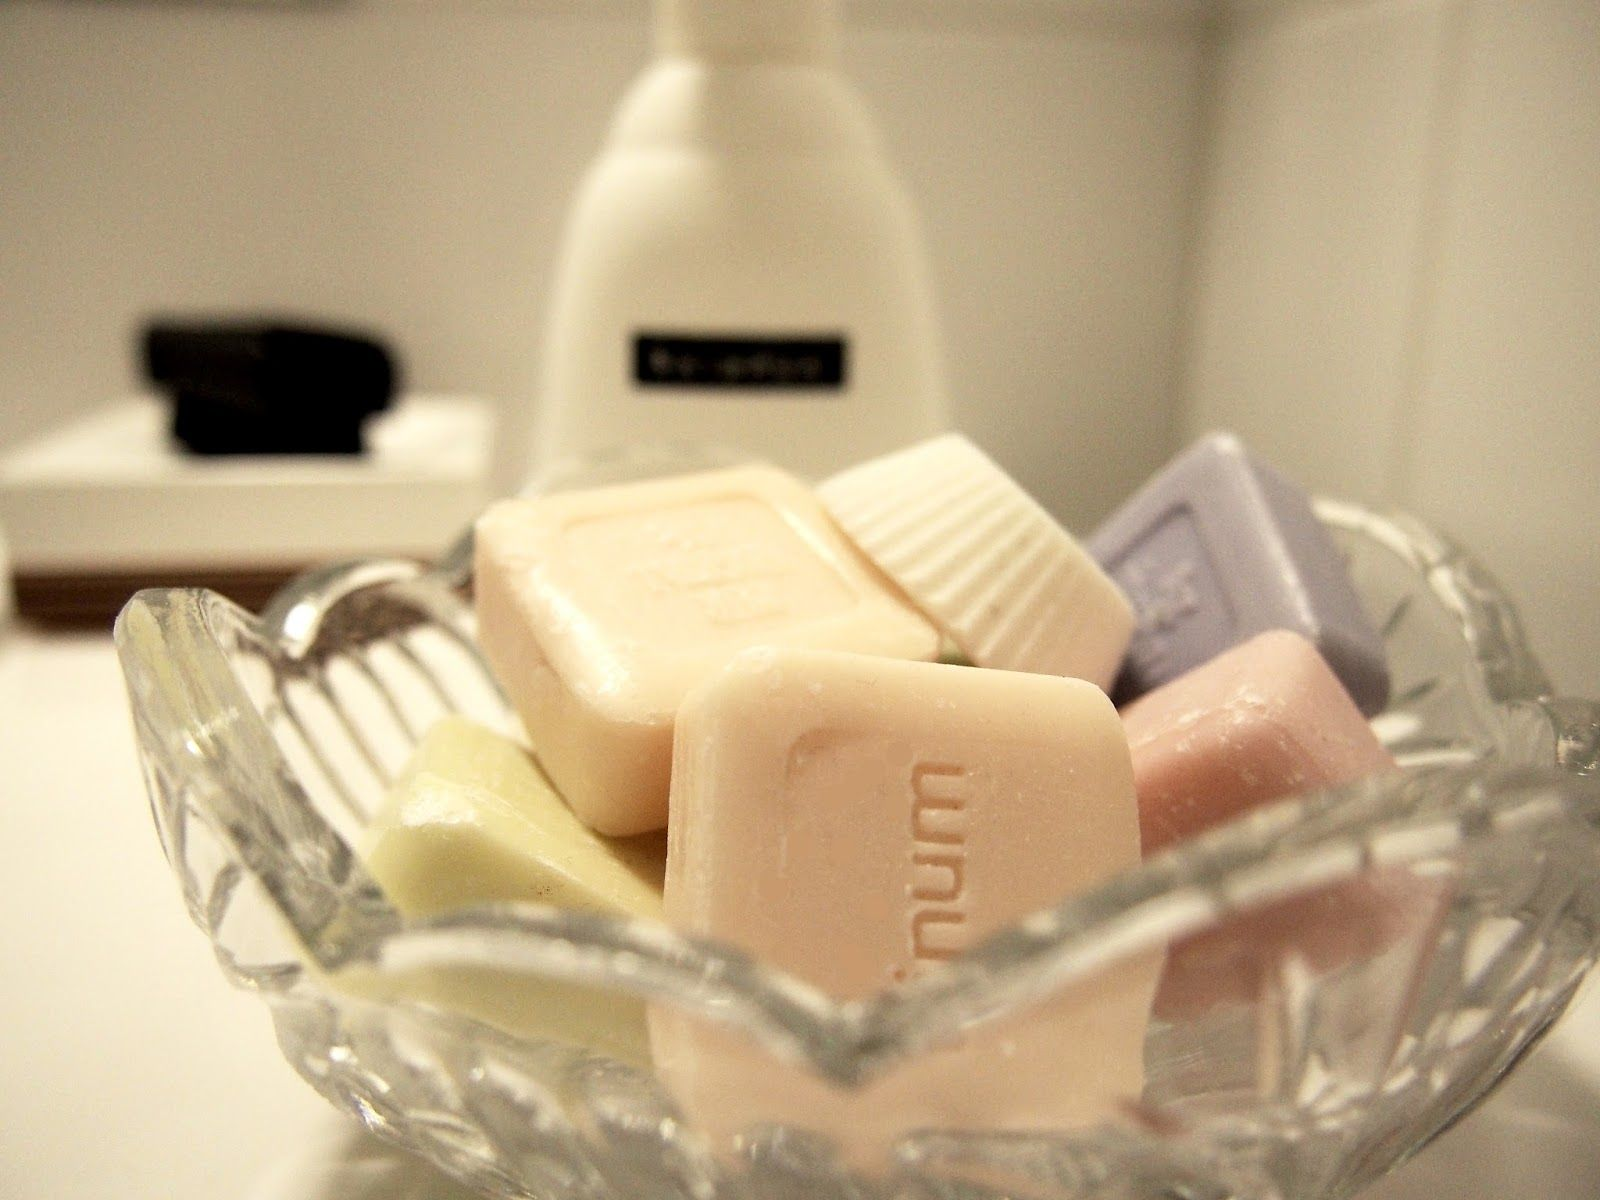 Soaps like candy